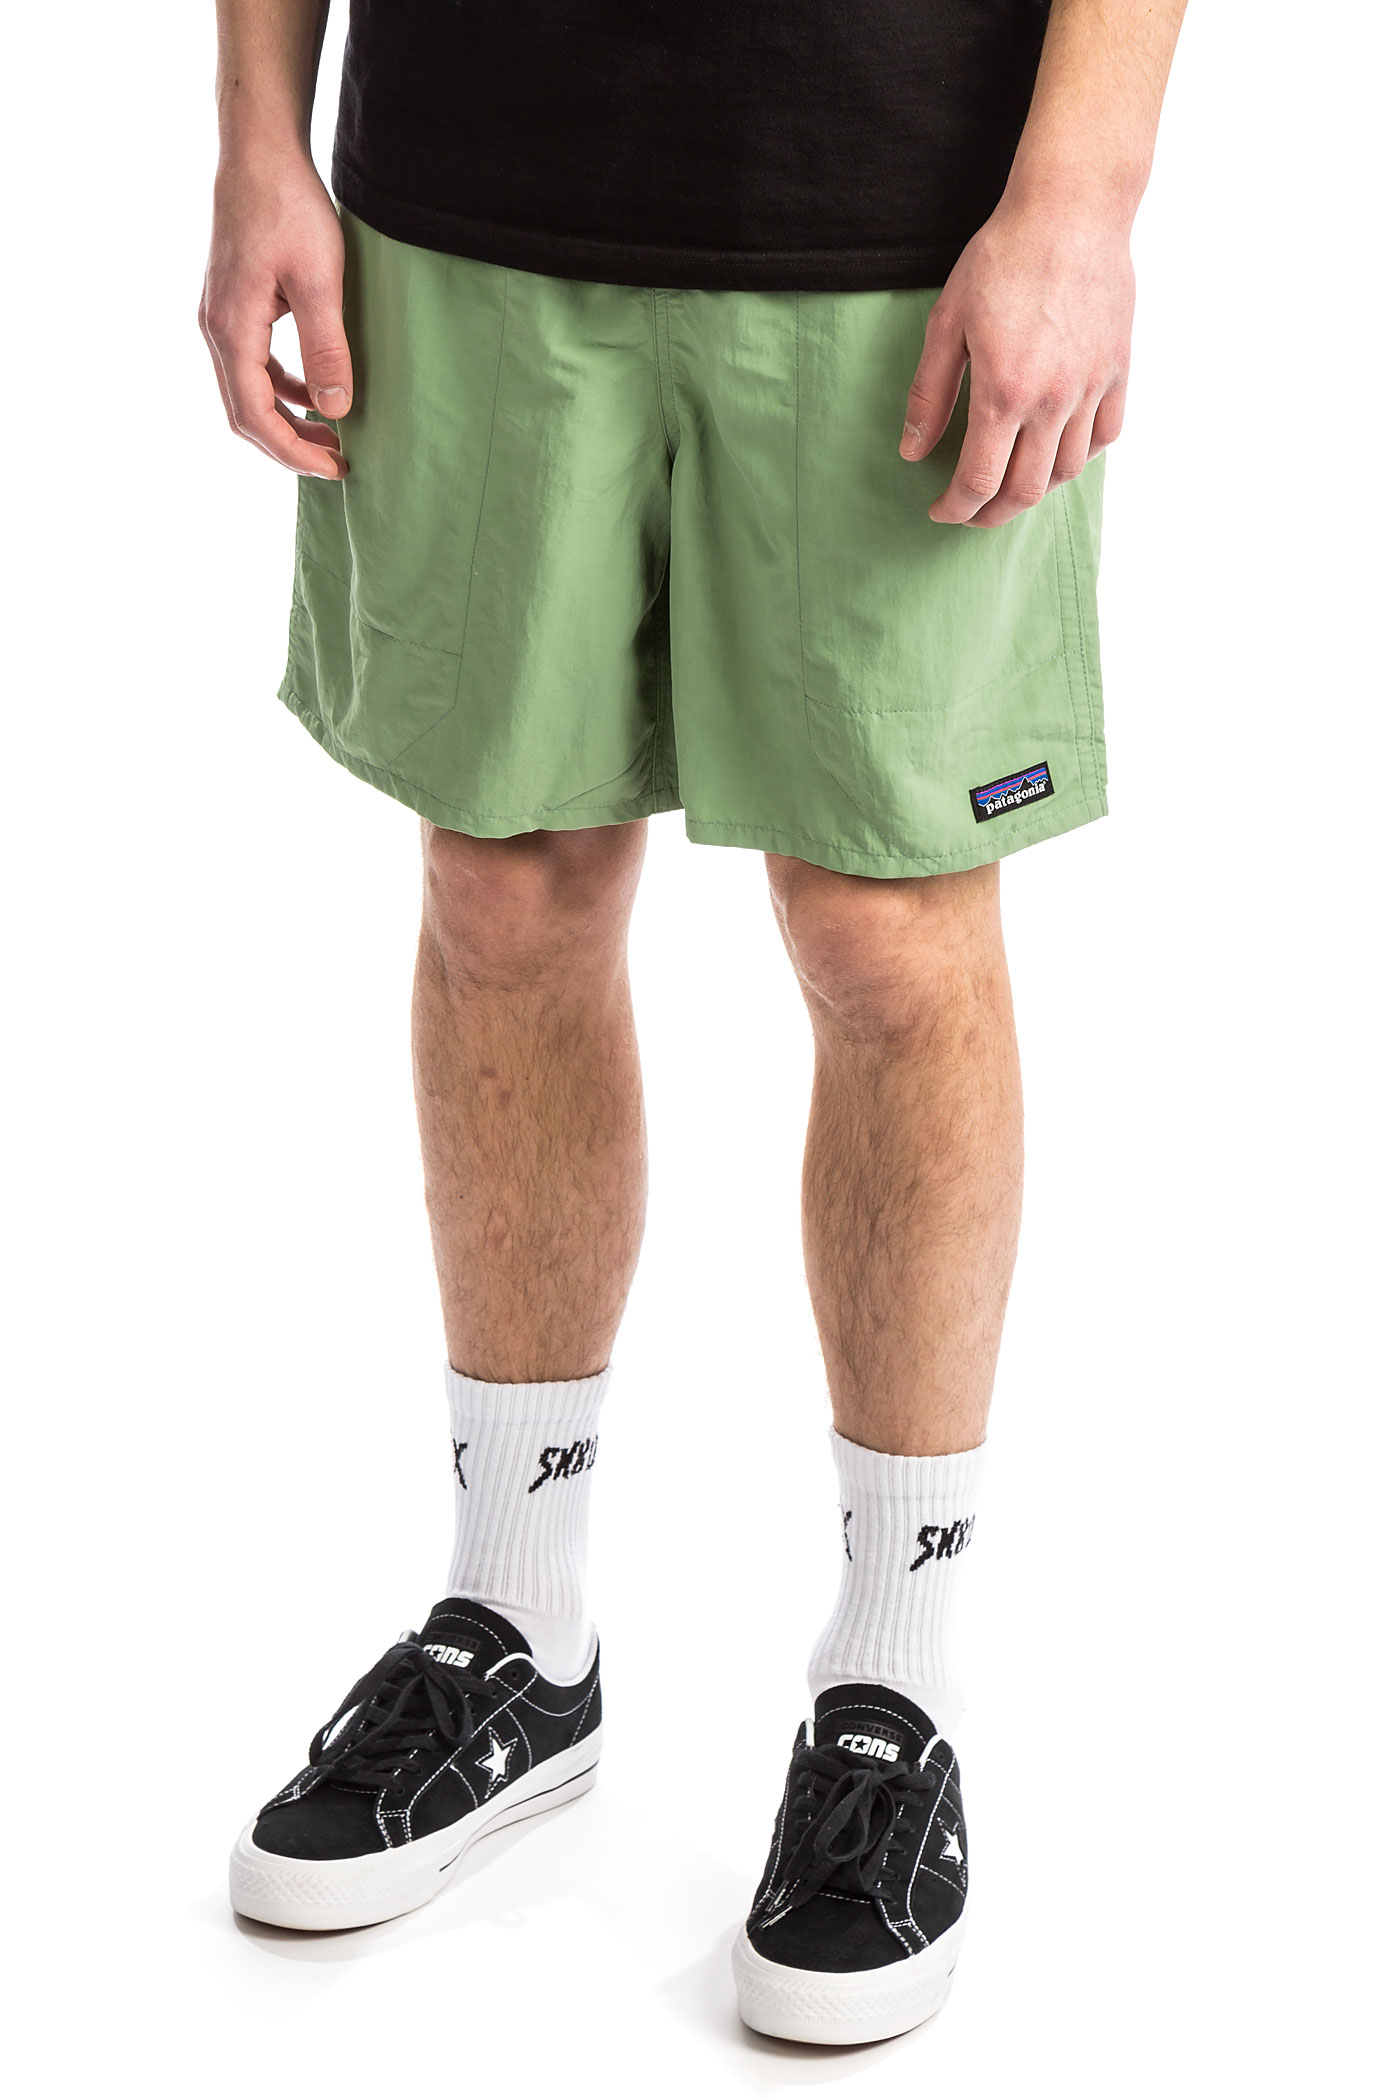 Patagonia Baggies Patagonia Baggies Patagonia Green Shortsmatcha Shortsmatcha Shortsmatcha Green Baggies sBCrhQtdx